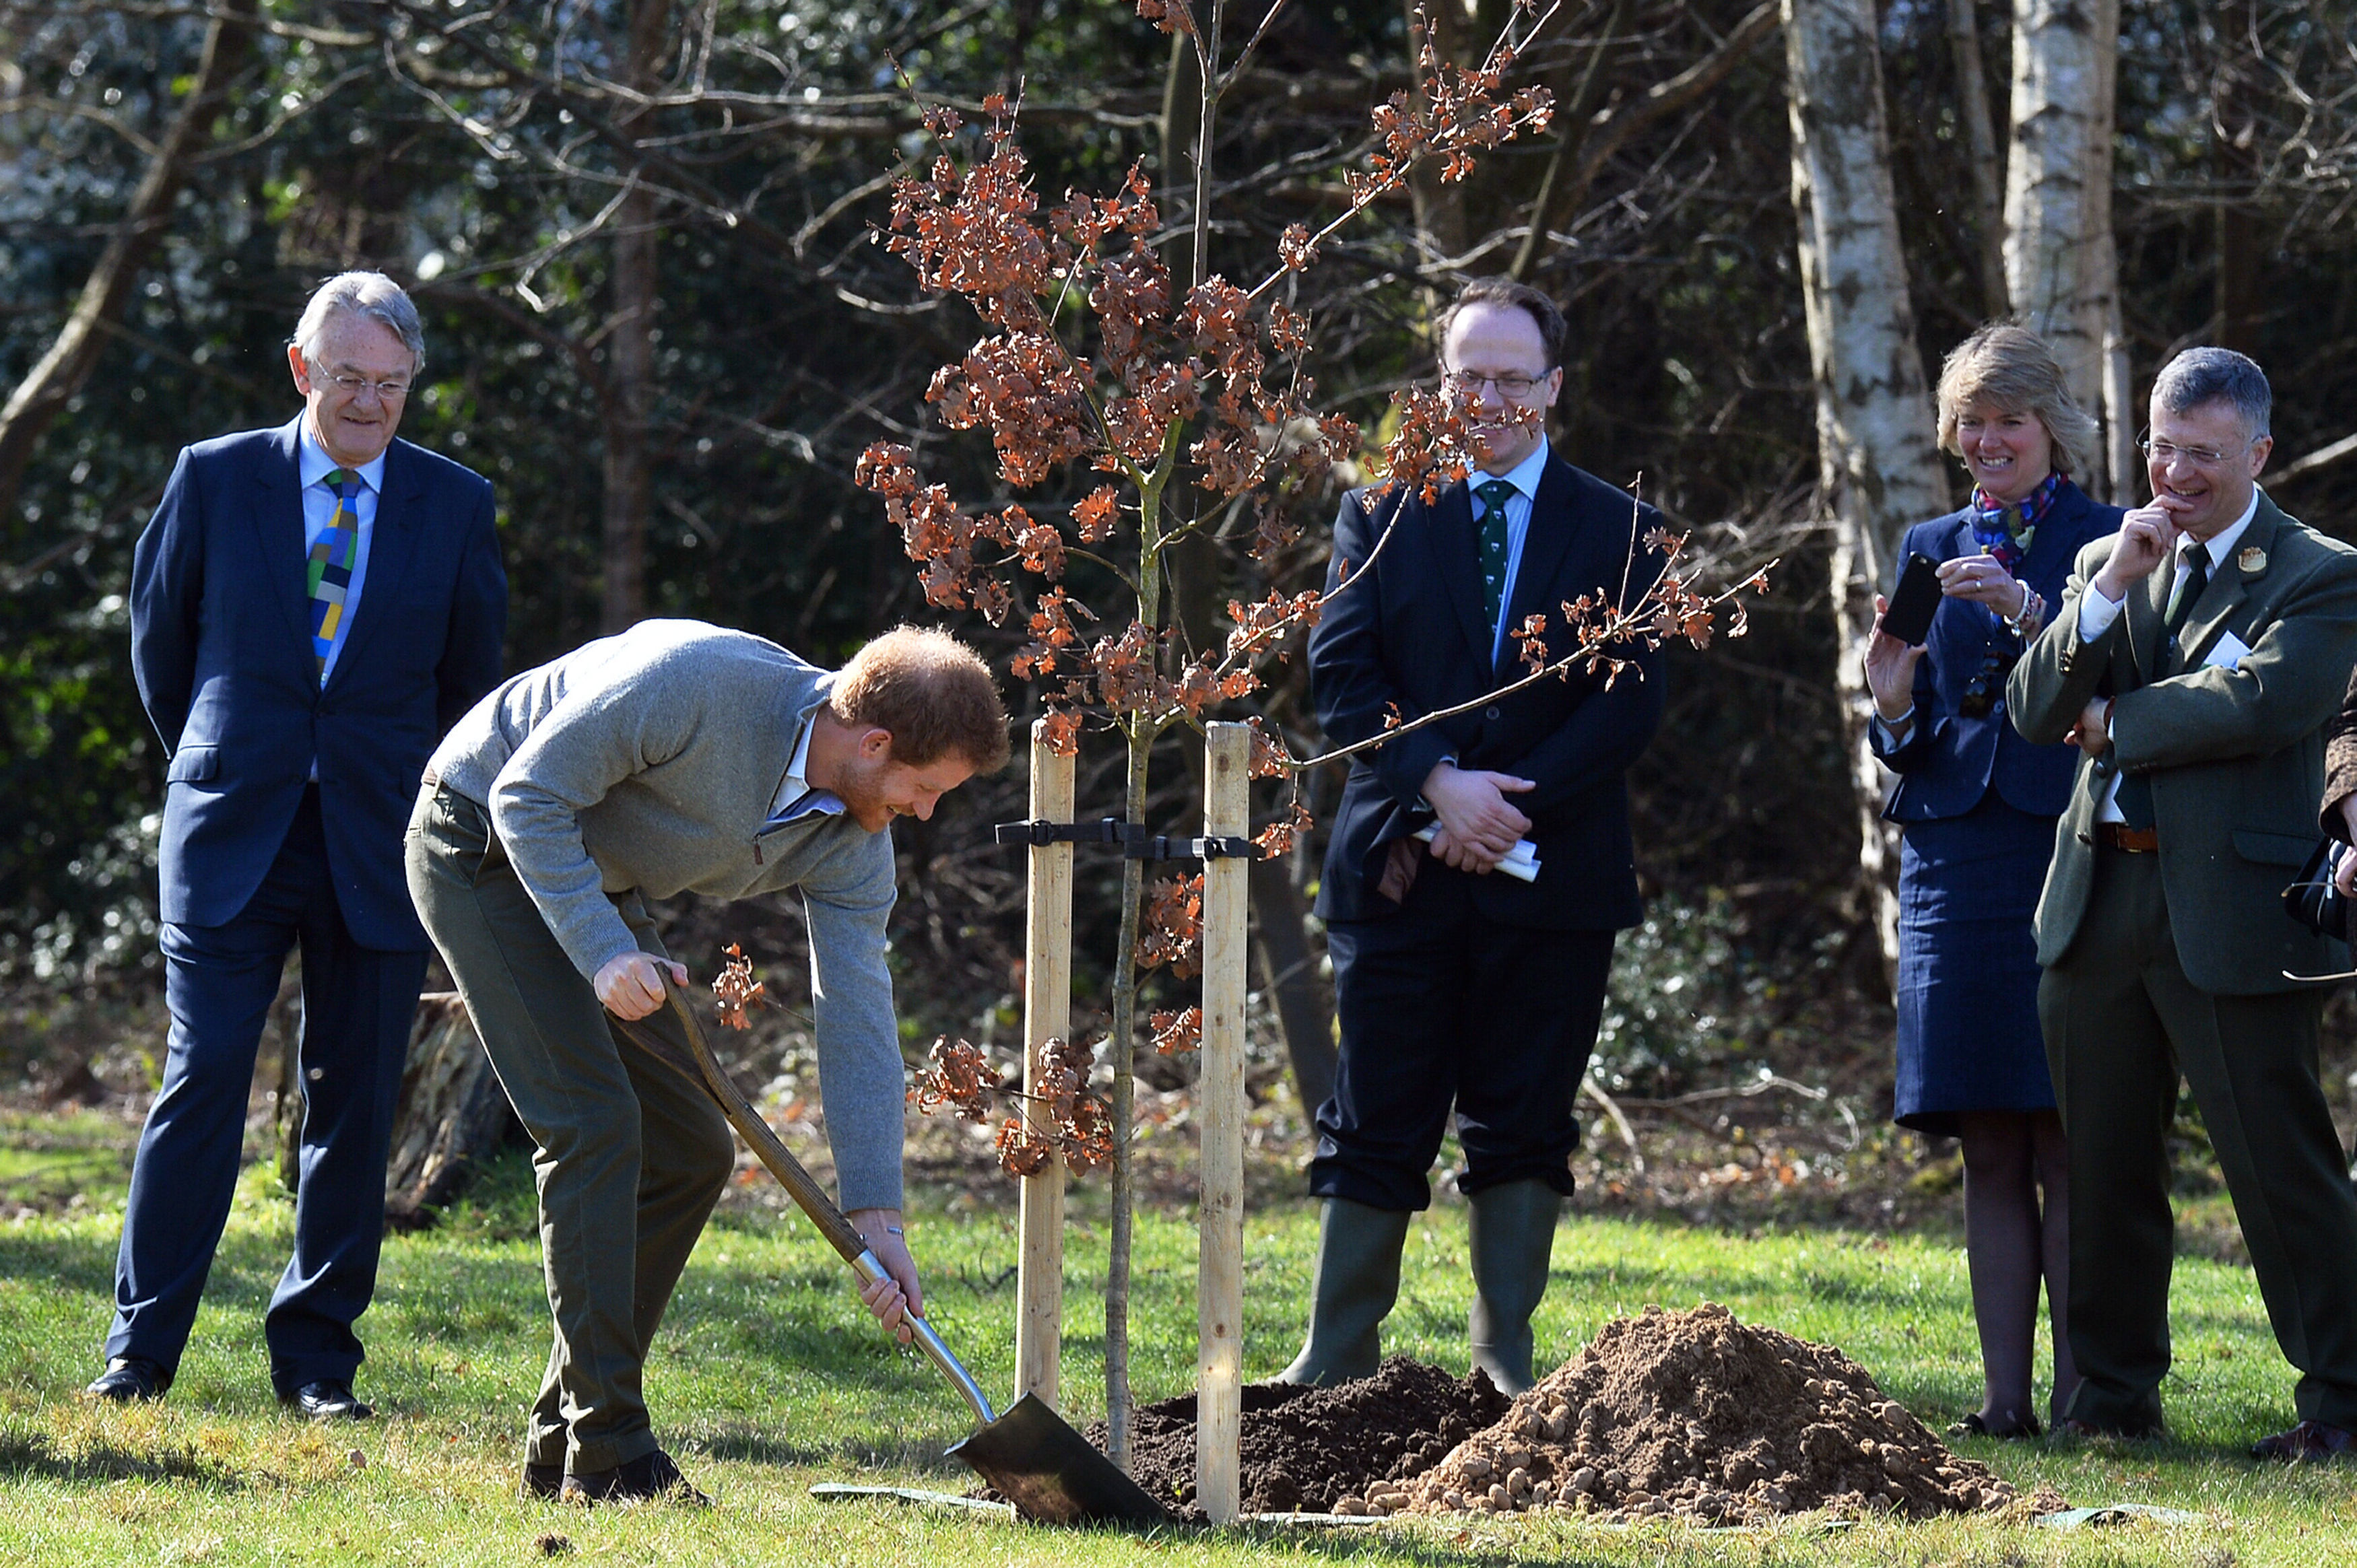 Prince Harry plants a tree as part of The Queen's Commonwealth Canopy